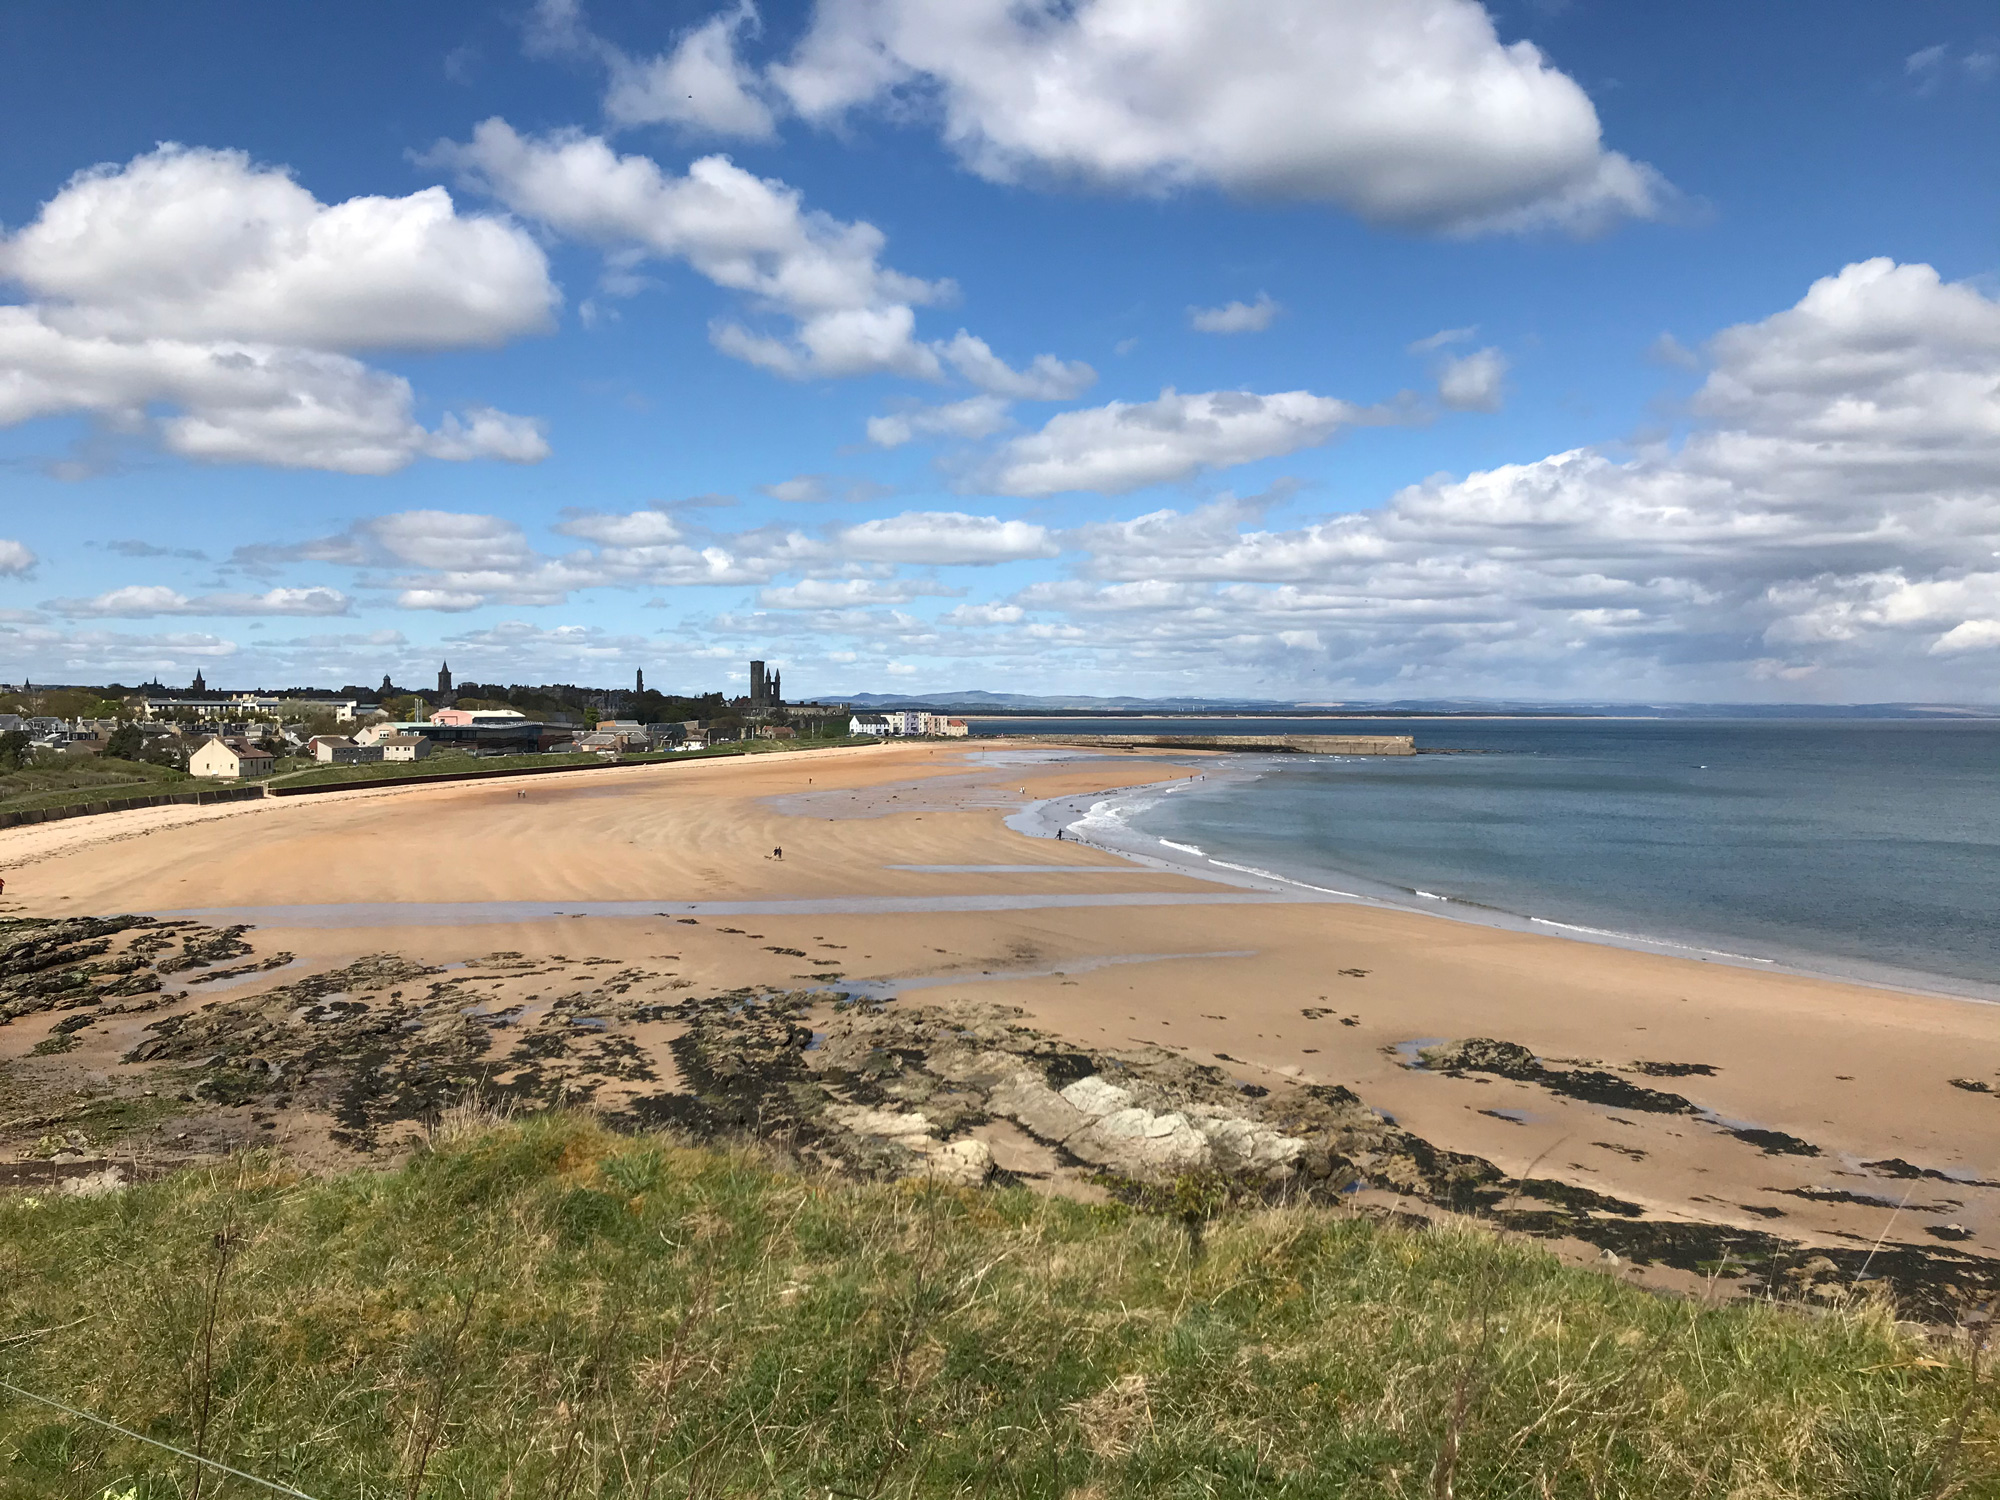 View of beach against sky in Saint Andrews, United Kingdom